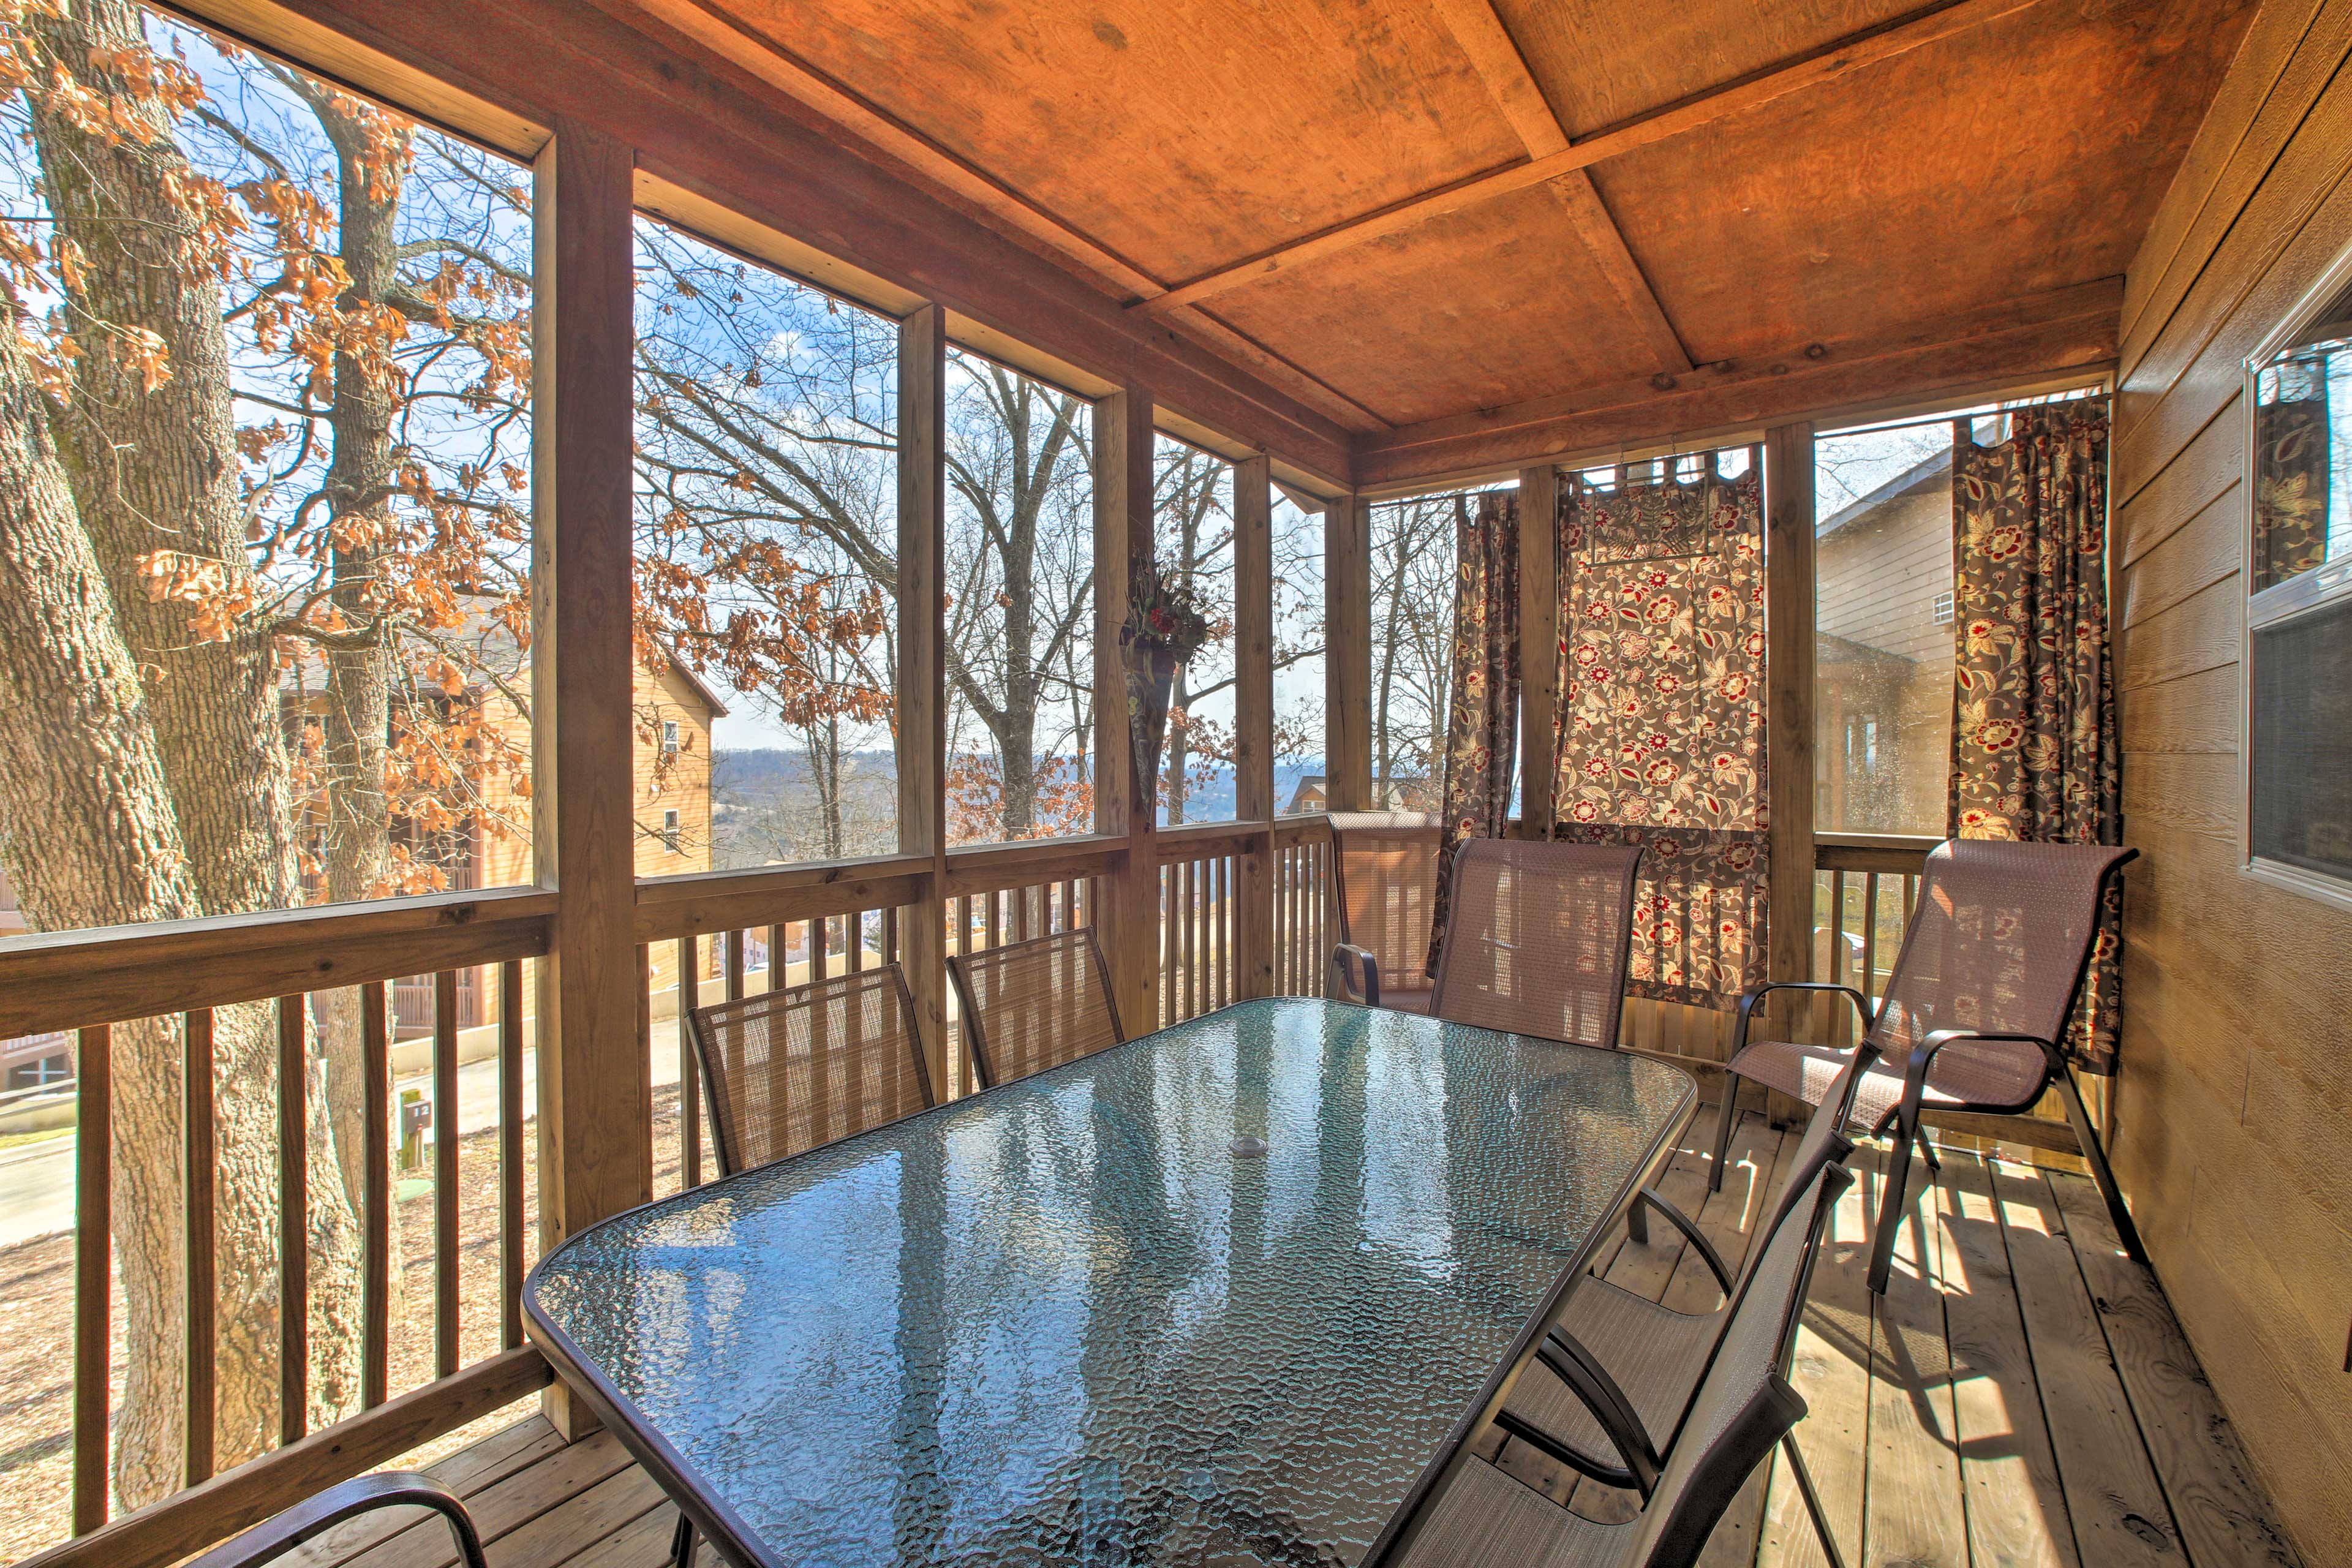 Highlights of the home include a screened deck, fire pit, grill, & more!